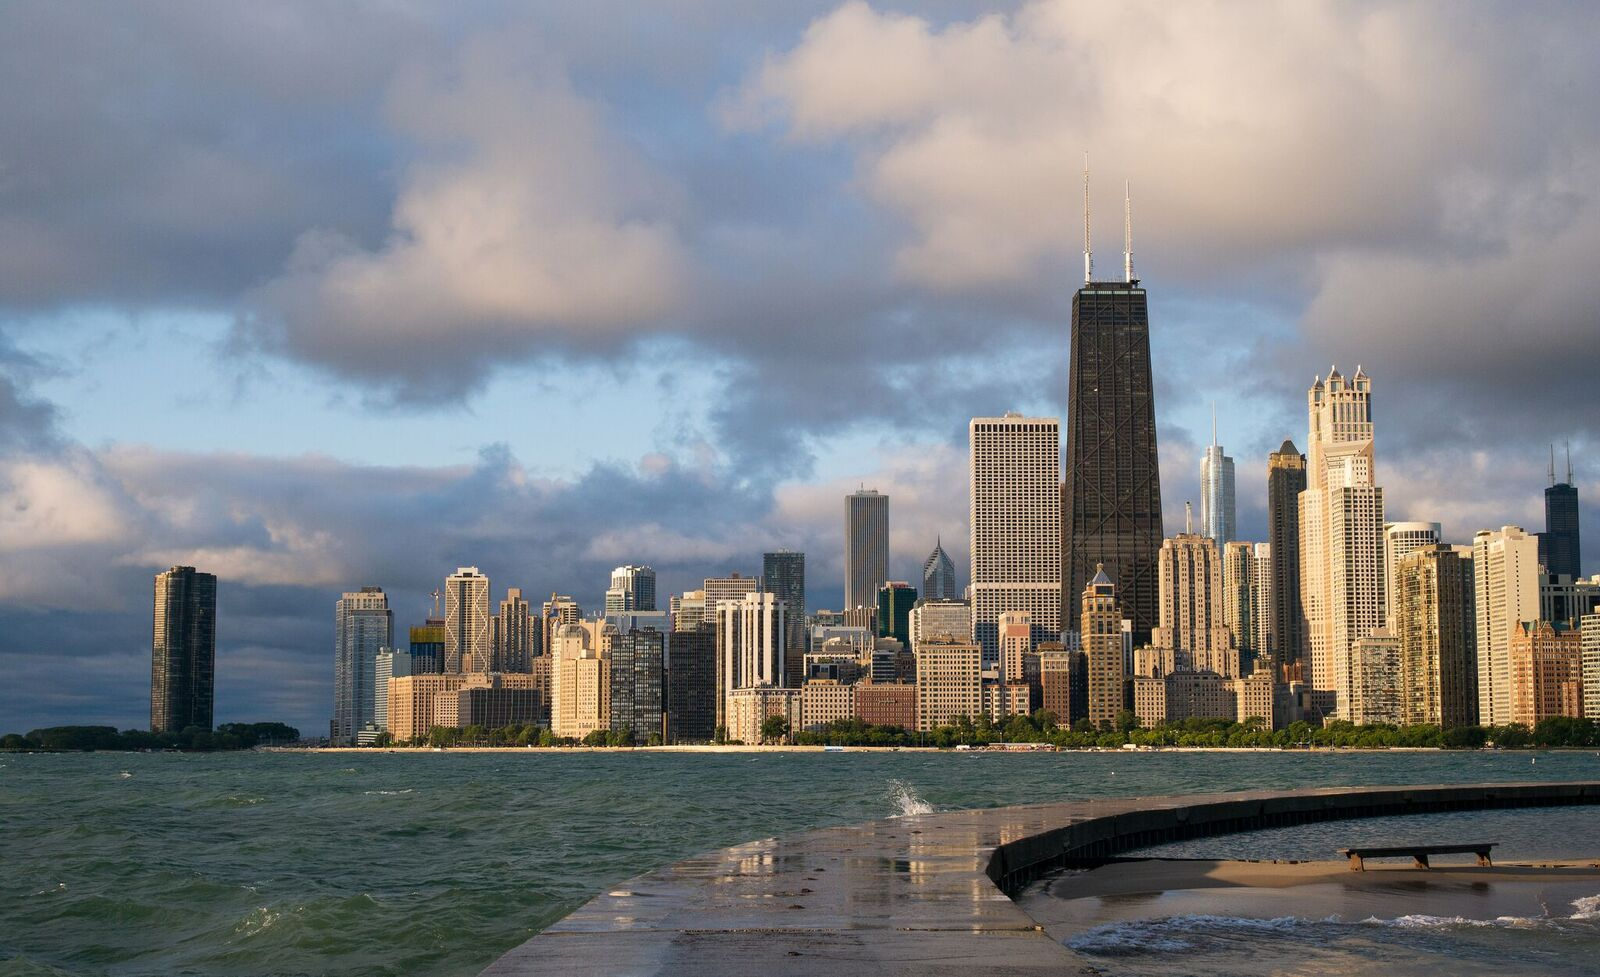 Flickr_Chicago_Lit_by_Morning_Sun_Roman_Boed.jpg